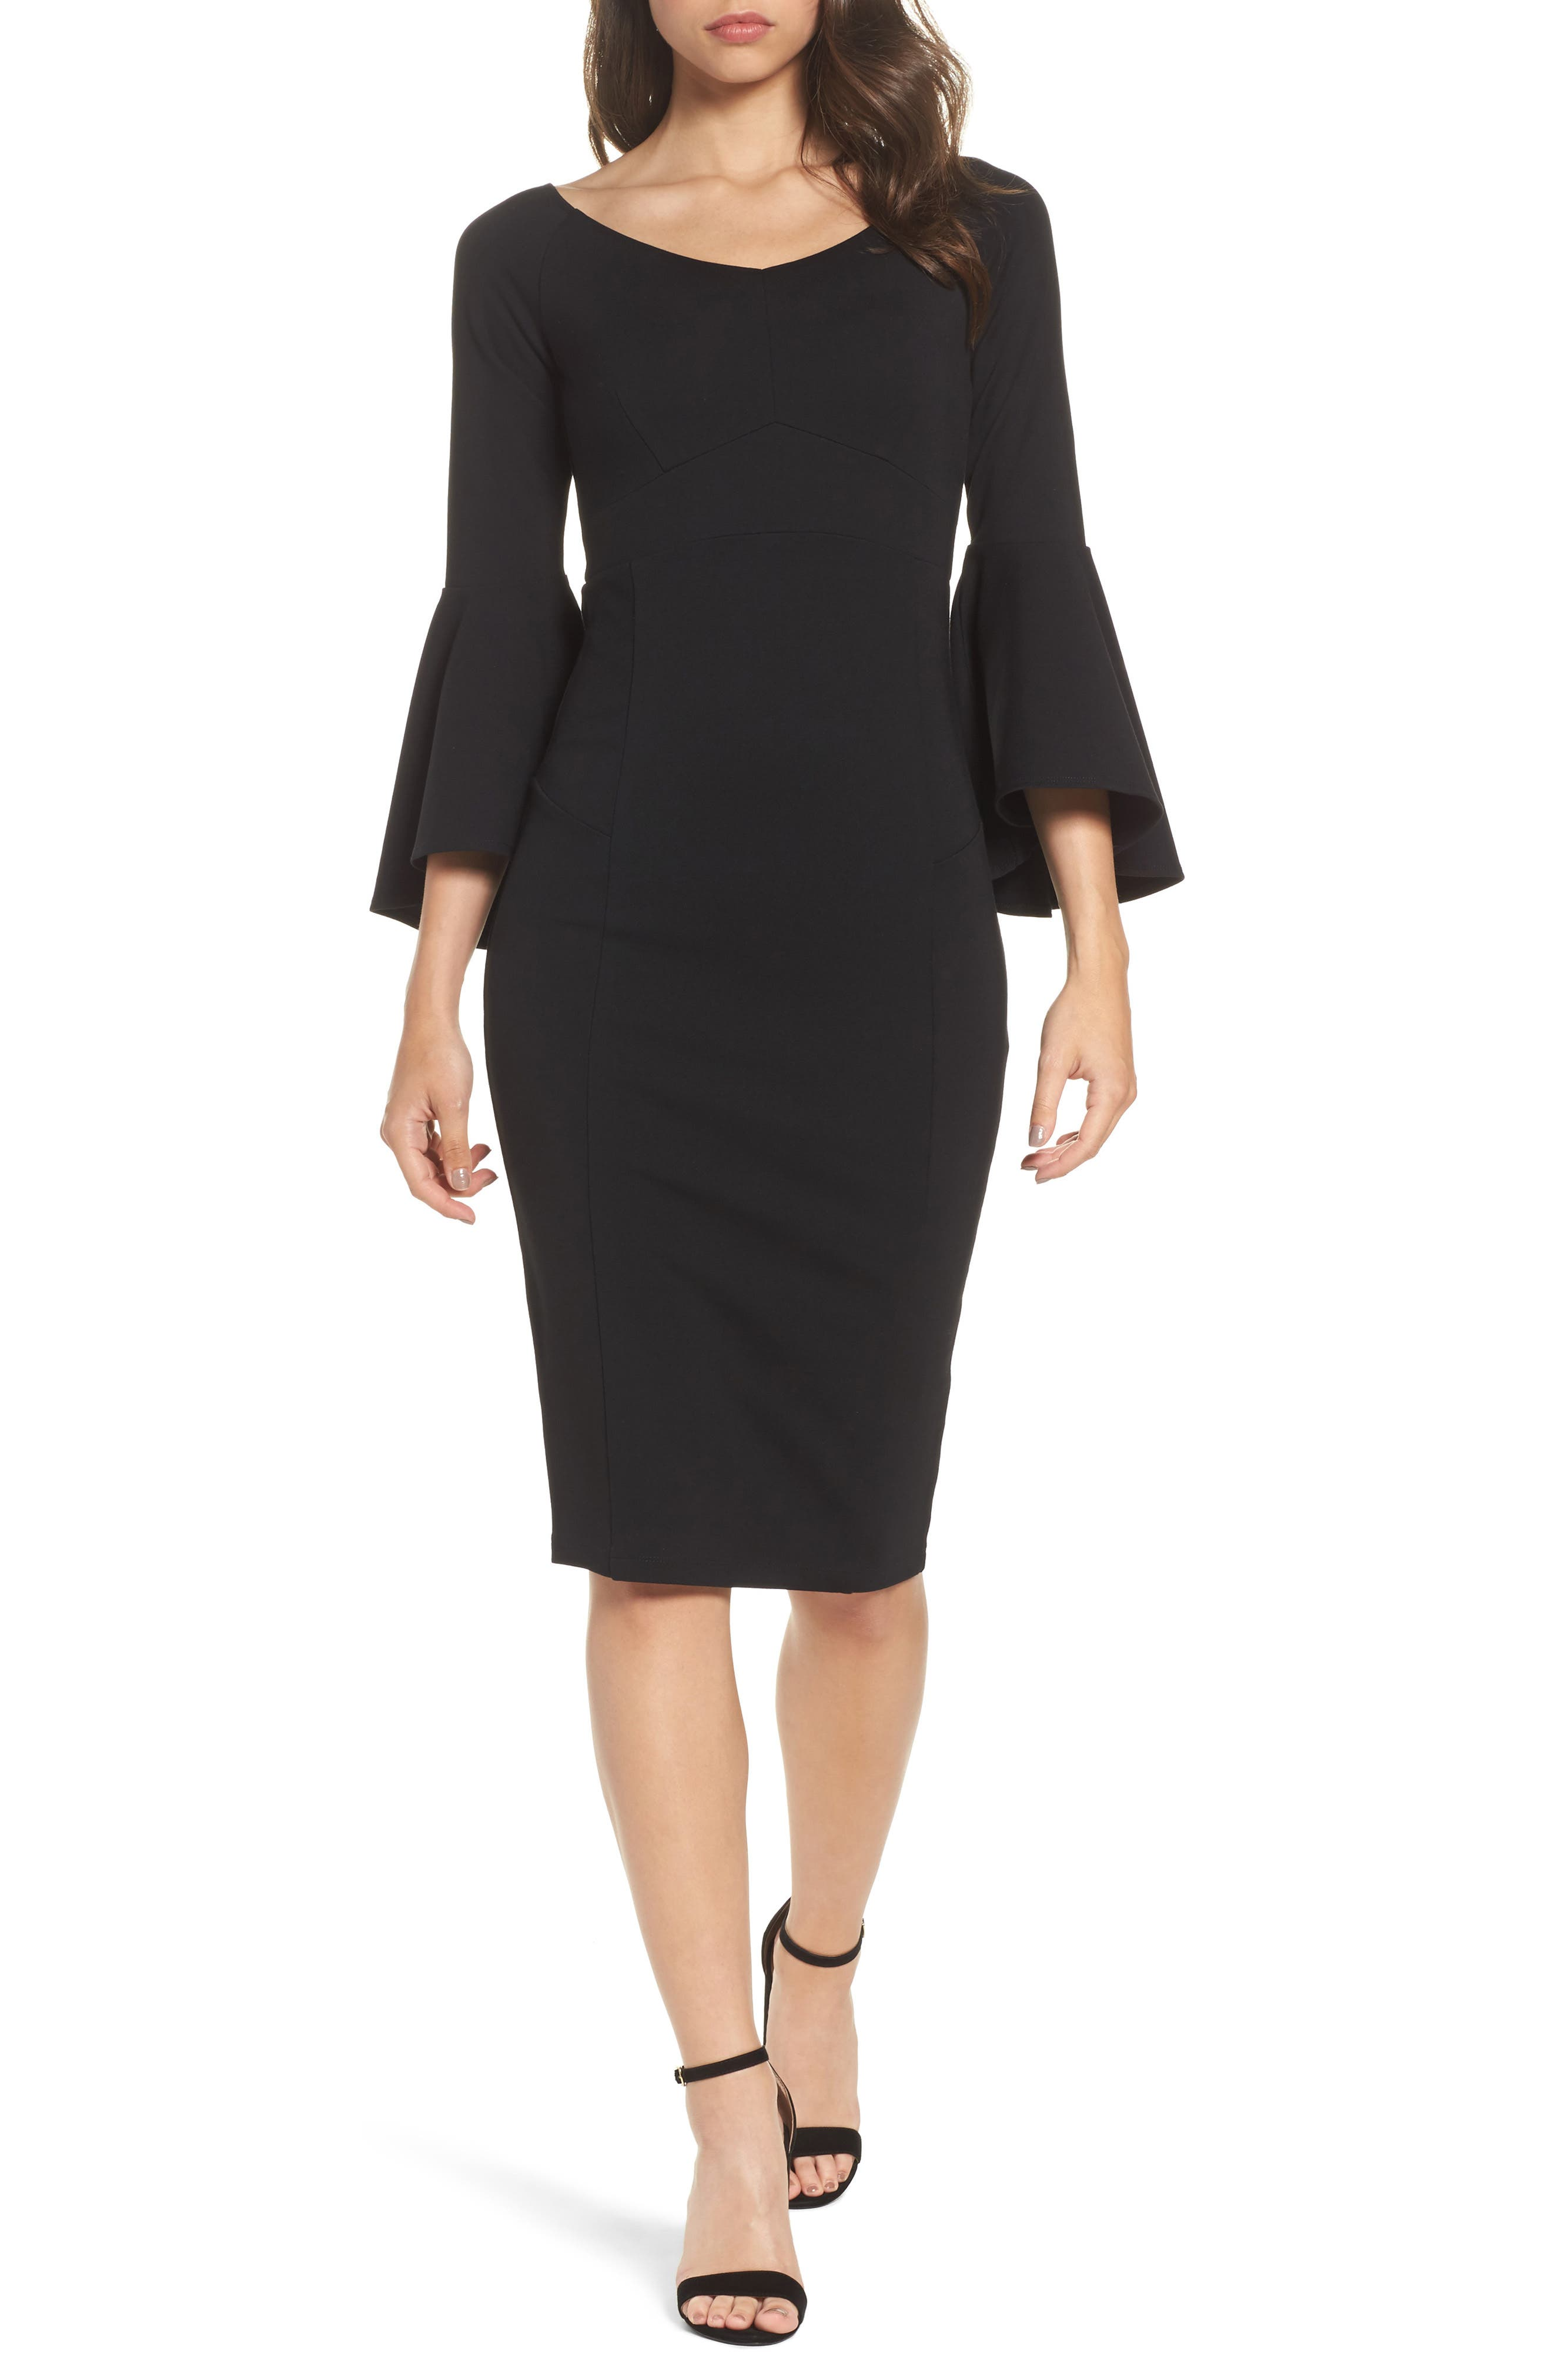 Milly Bell Sleeve Midi Dress,                         Main,                         color, Black